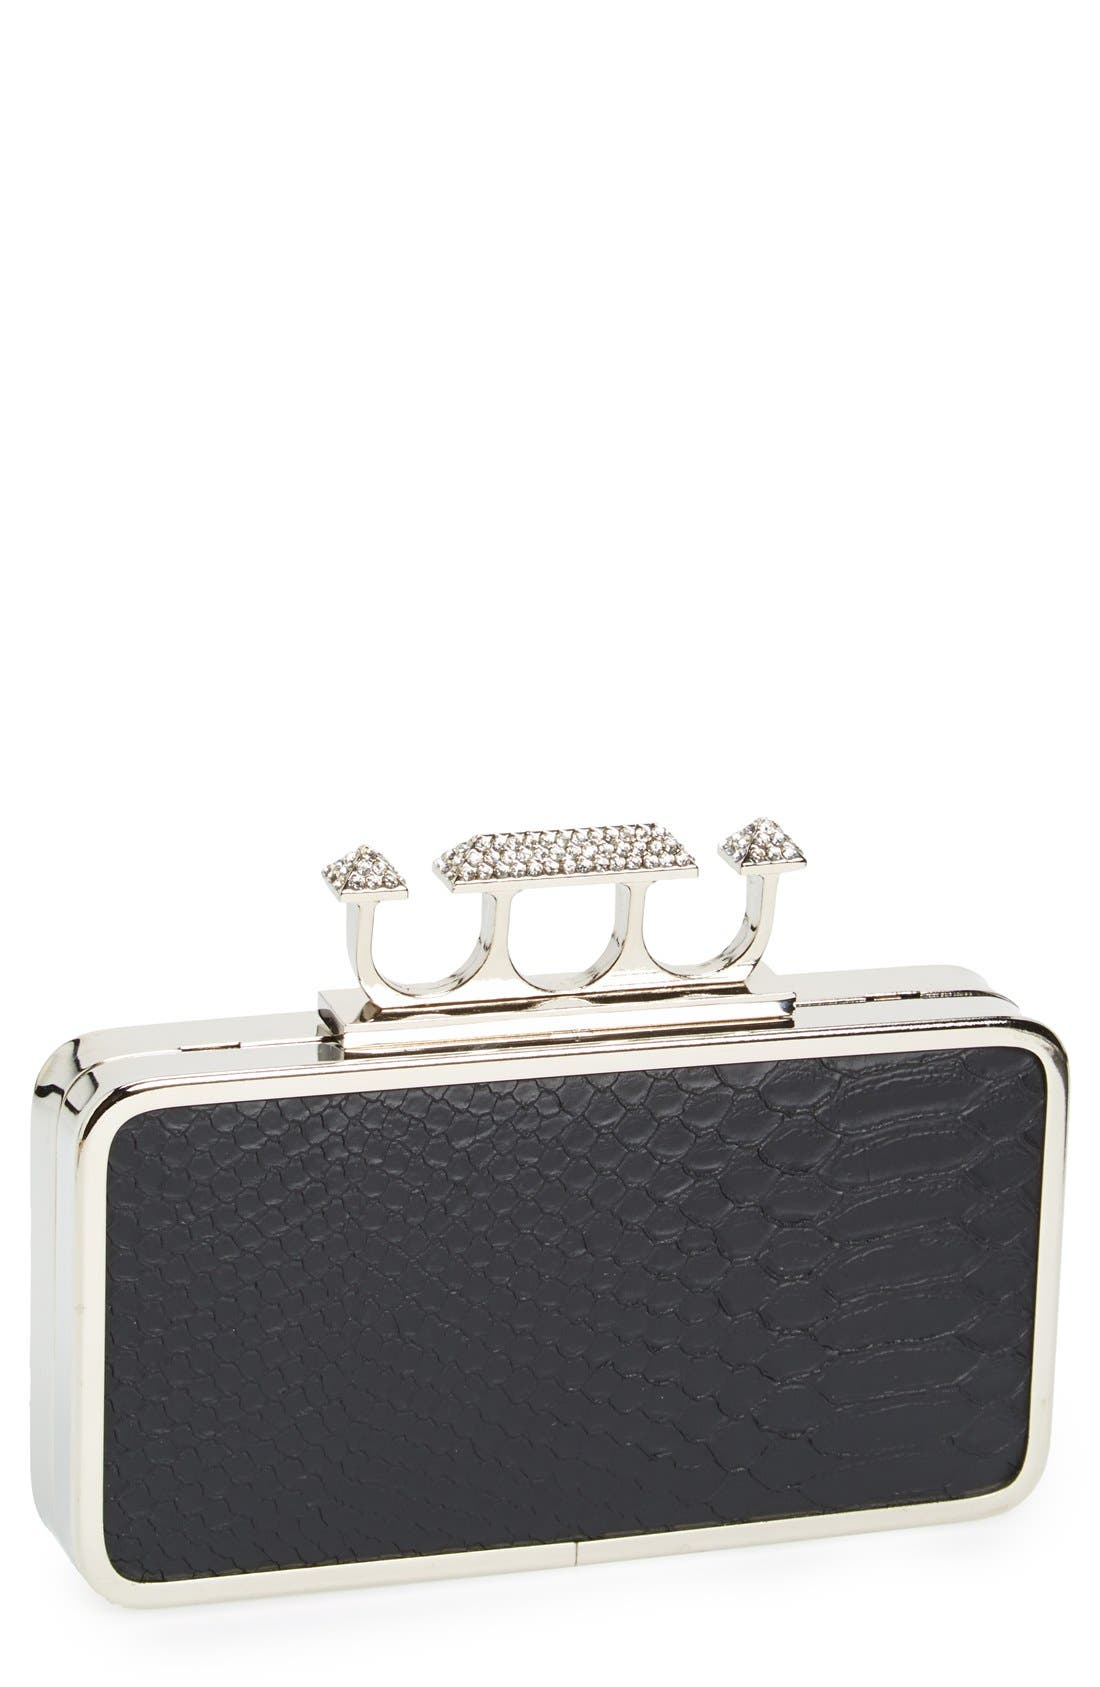 Couture Knuckle Clasp Clutch,                         Main,                         color, 001